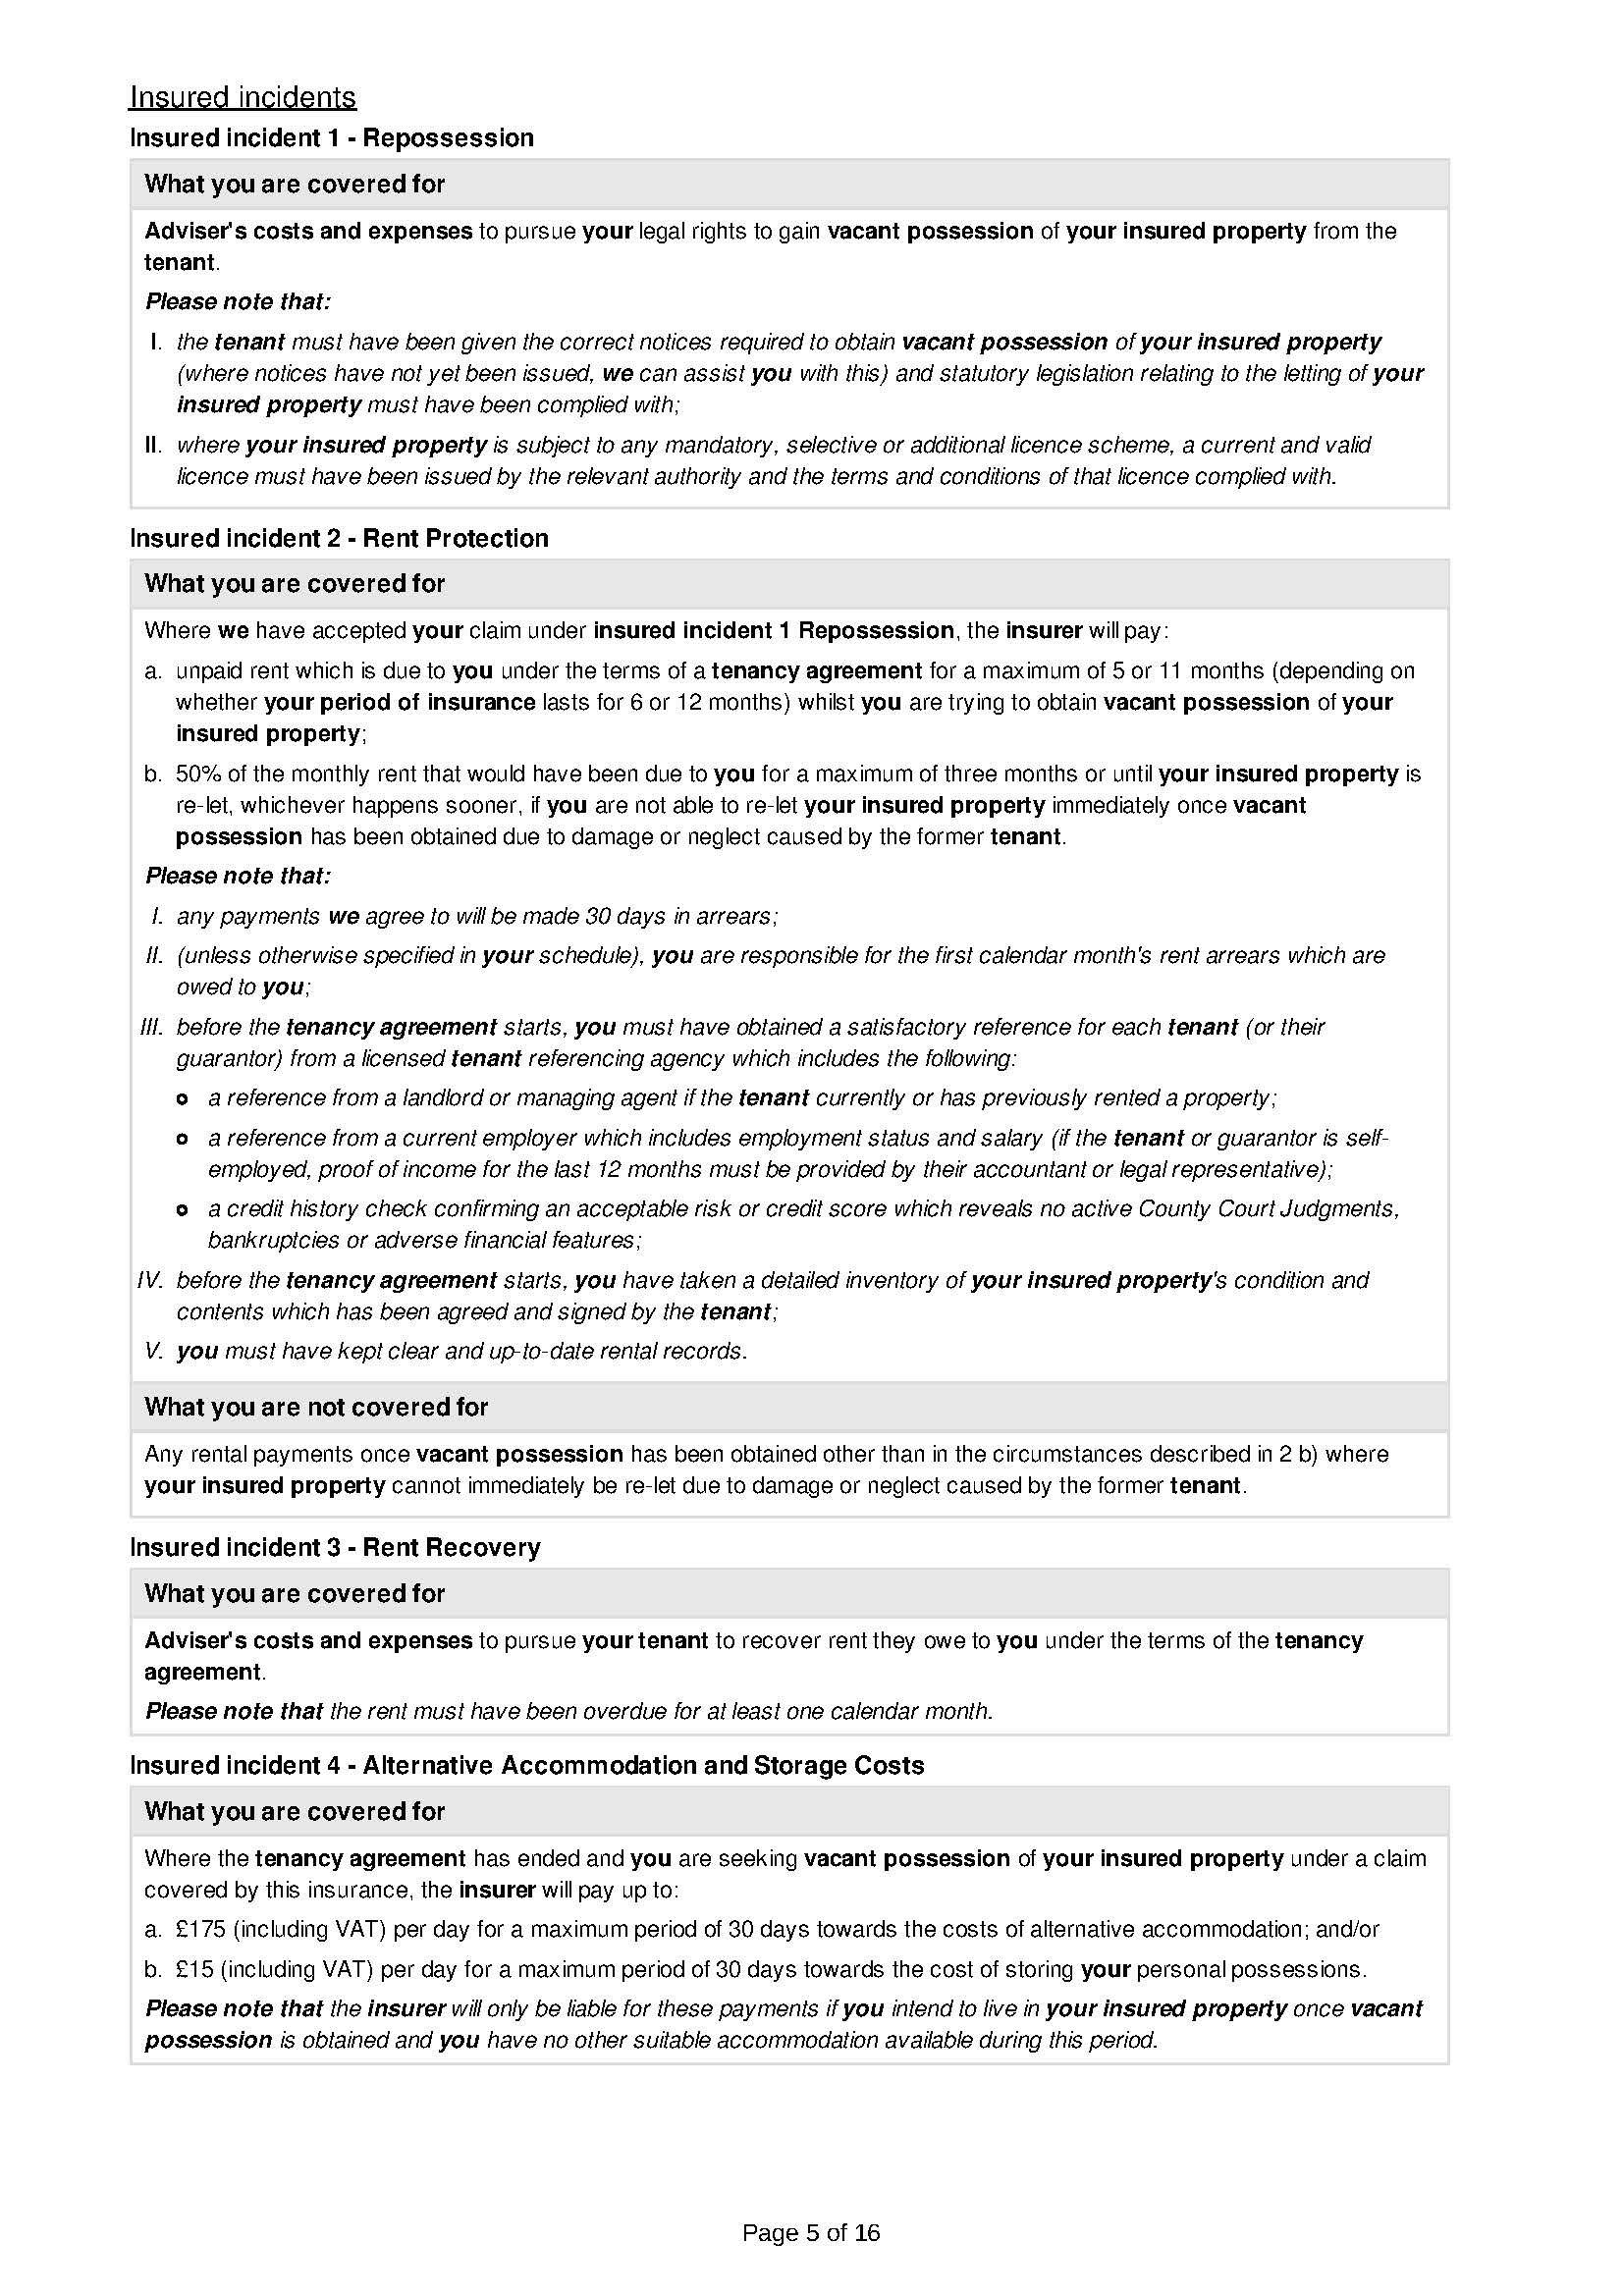 insurance_policy_02_page_05